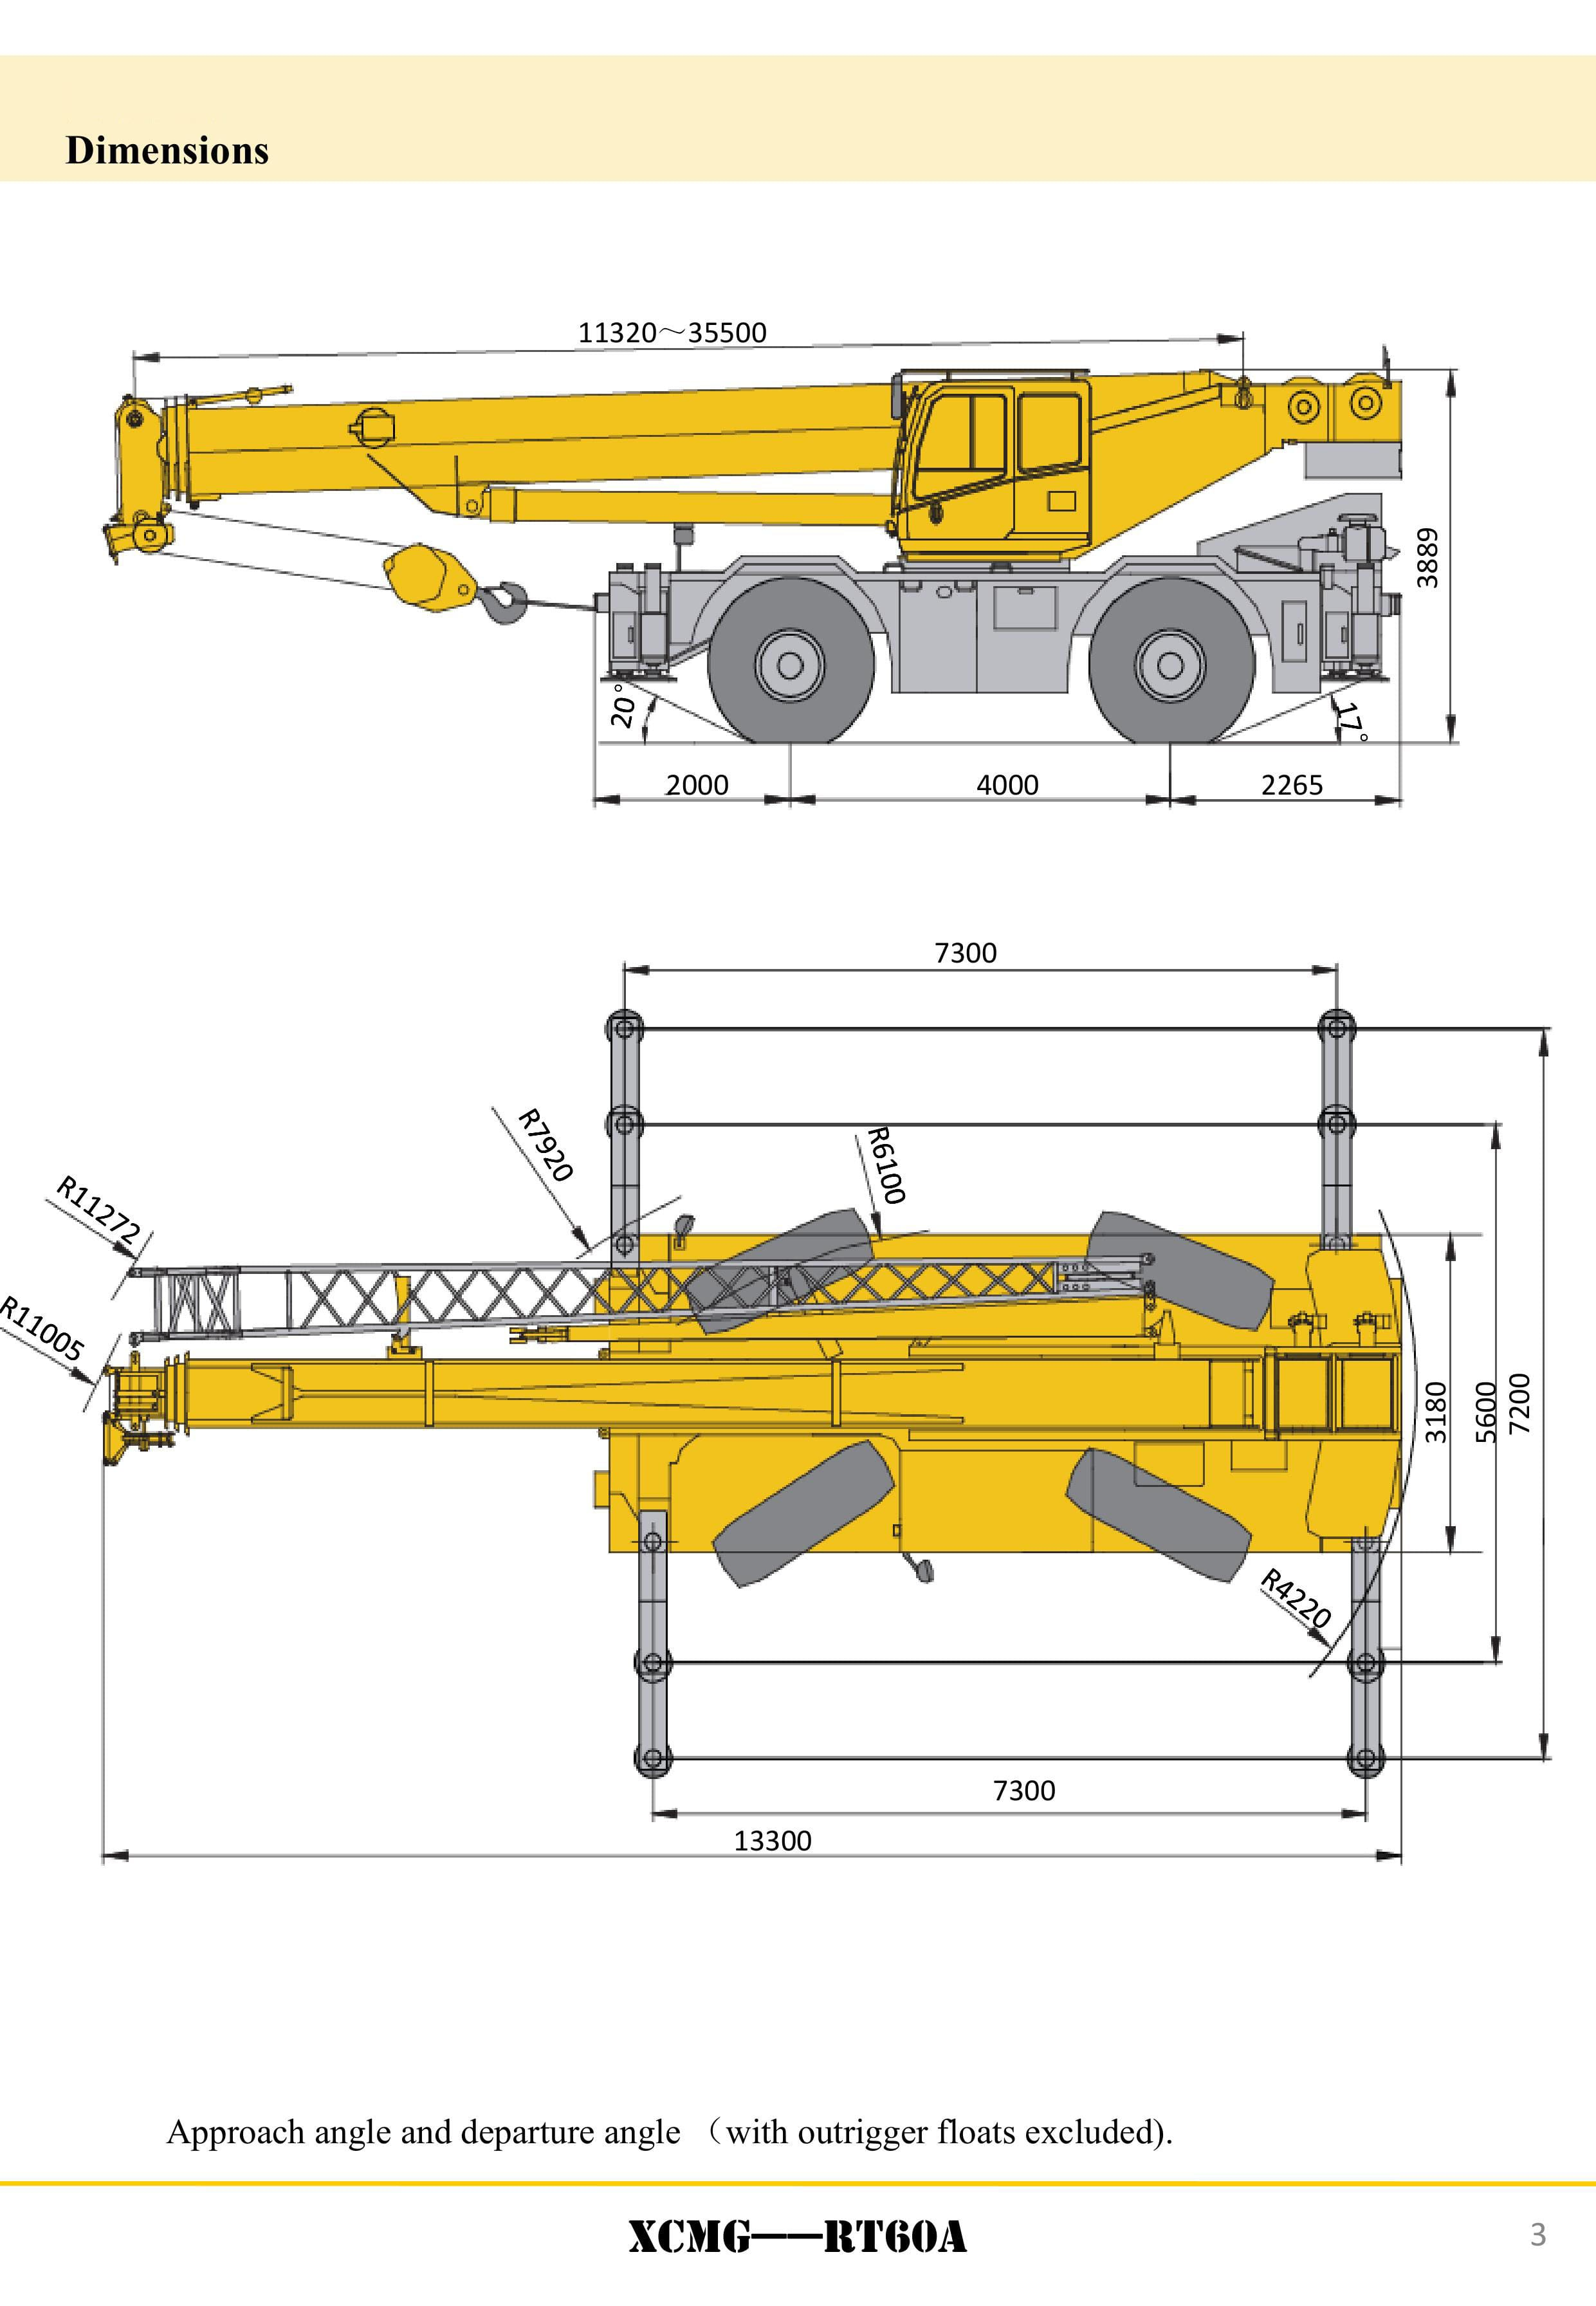 XCMG Official RT60A Rough Terrain Crane for sale